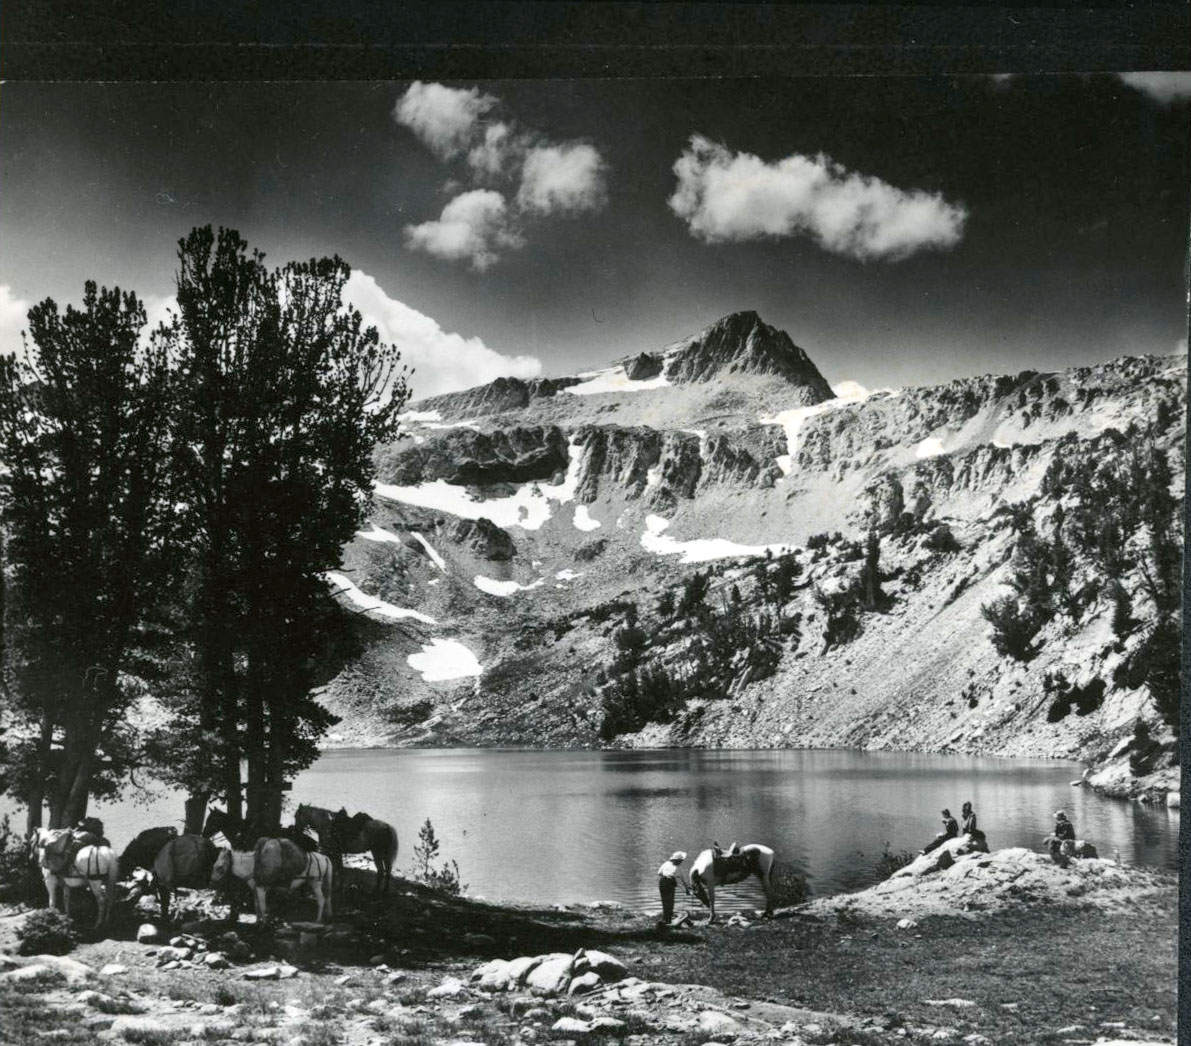 Wallowa Mountains, 1960